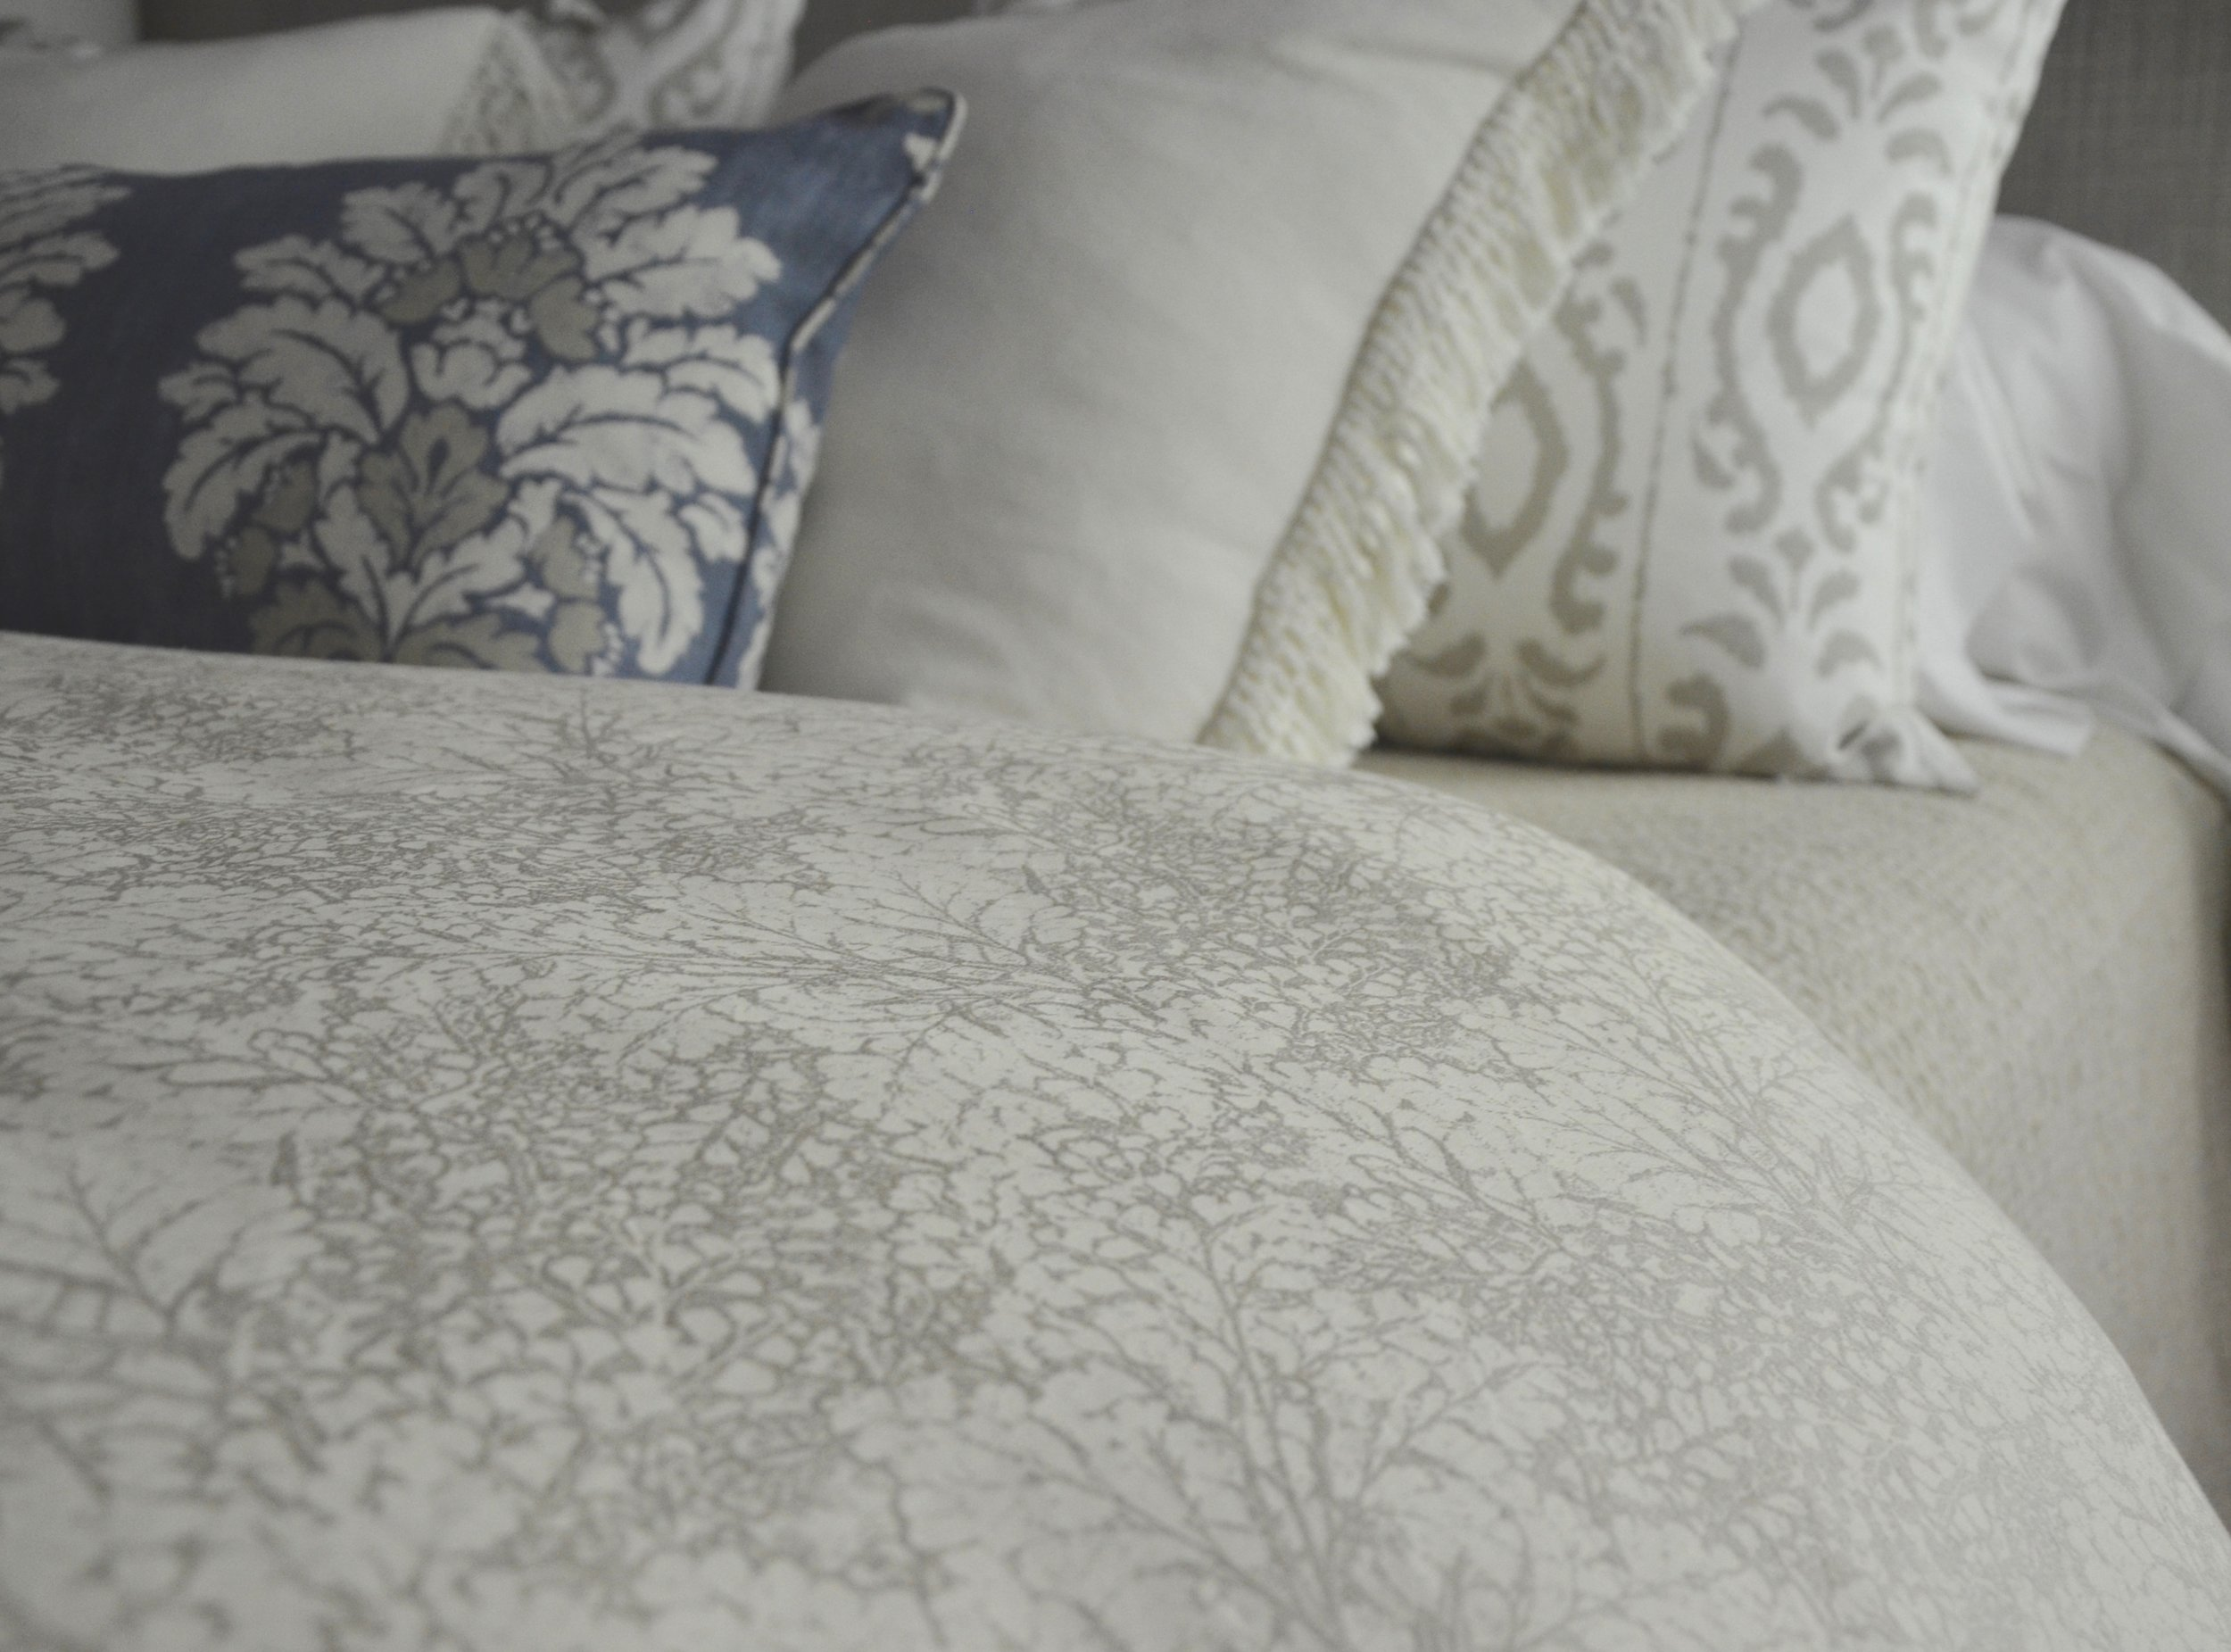 Duevet cover and bedding detail from our latest Turndown Service in McLean, VA, featuring SDH bedding.Turndown Service and Design by Valerianne of DC.